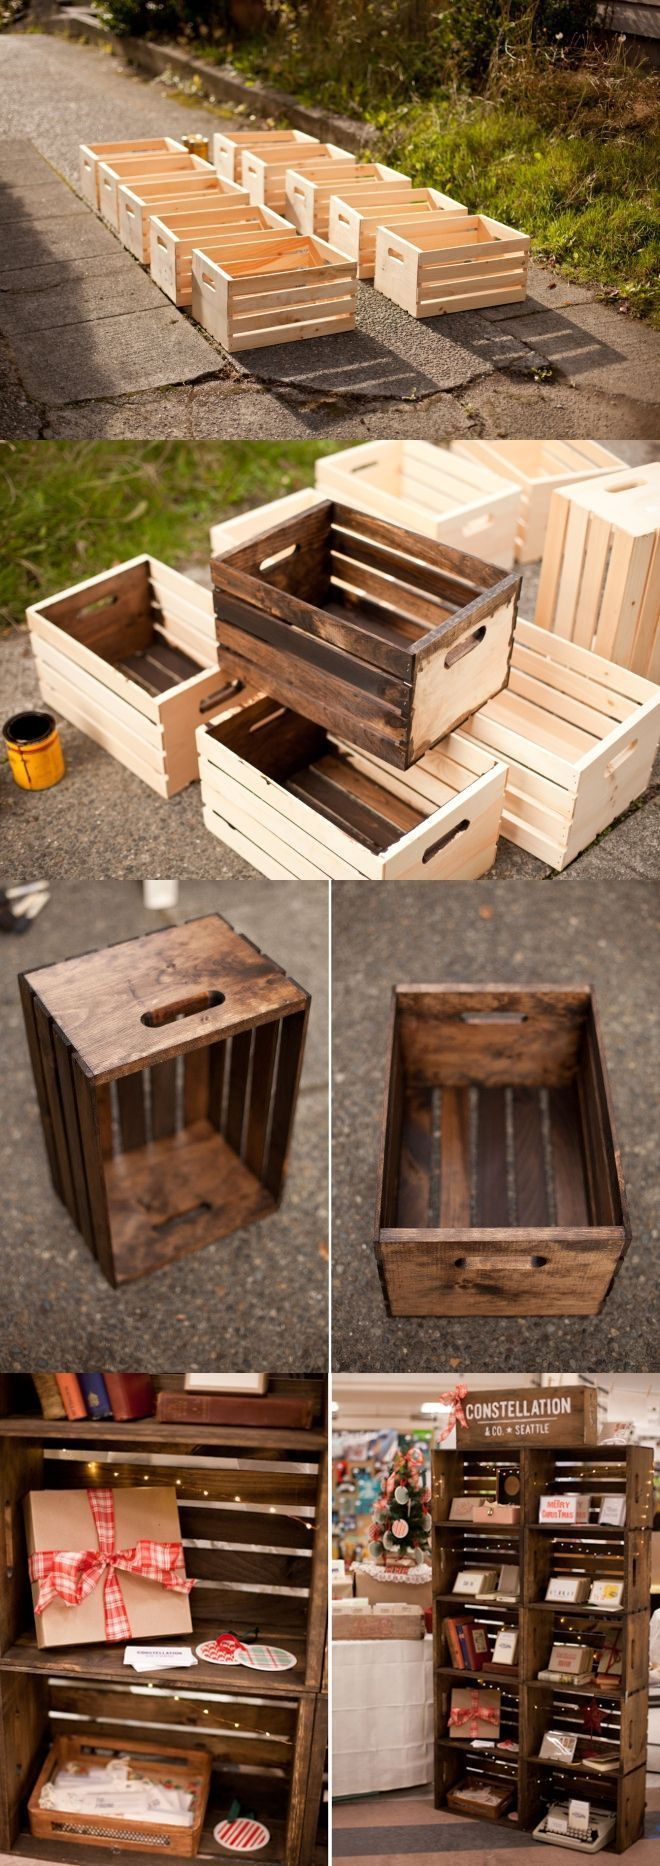 Ideas : Apple crates display case... Walmart carries these crates for  ea. - weekend project